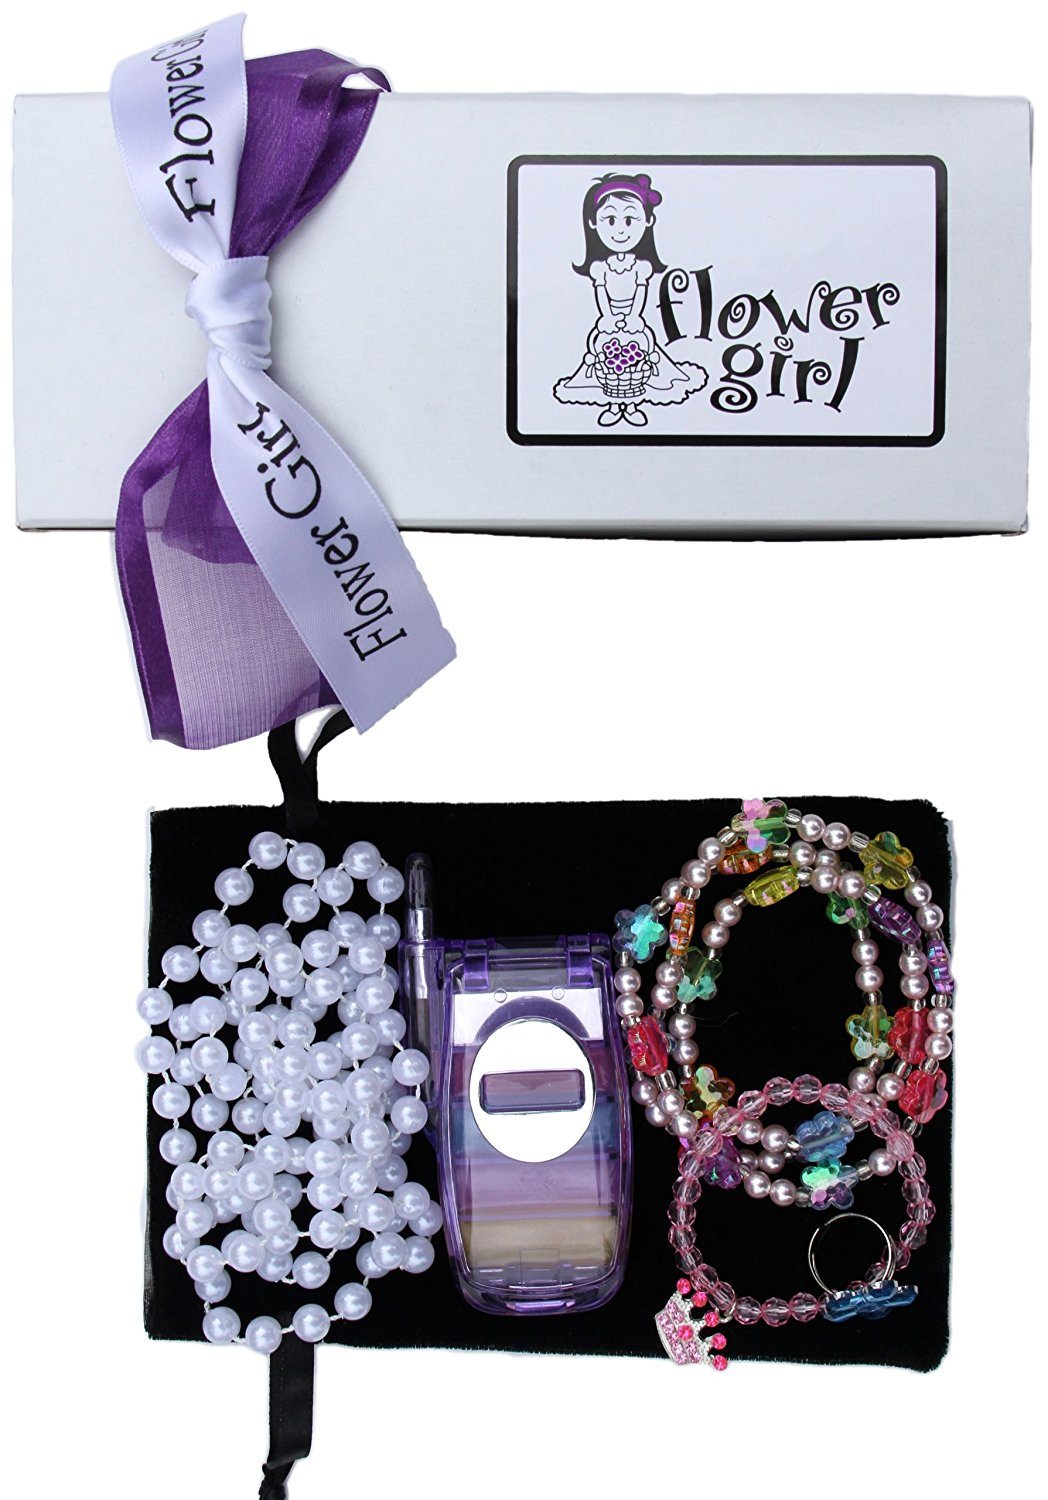 Cheap flower girl gift bag find flower girl gift bag deals on line get quotations flower girl gift boxed bling bag izmirmasajfo